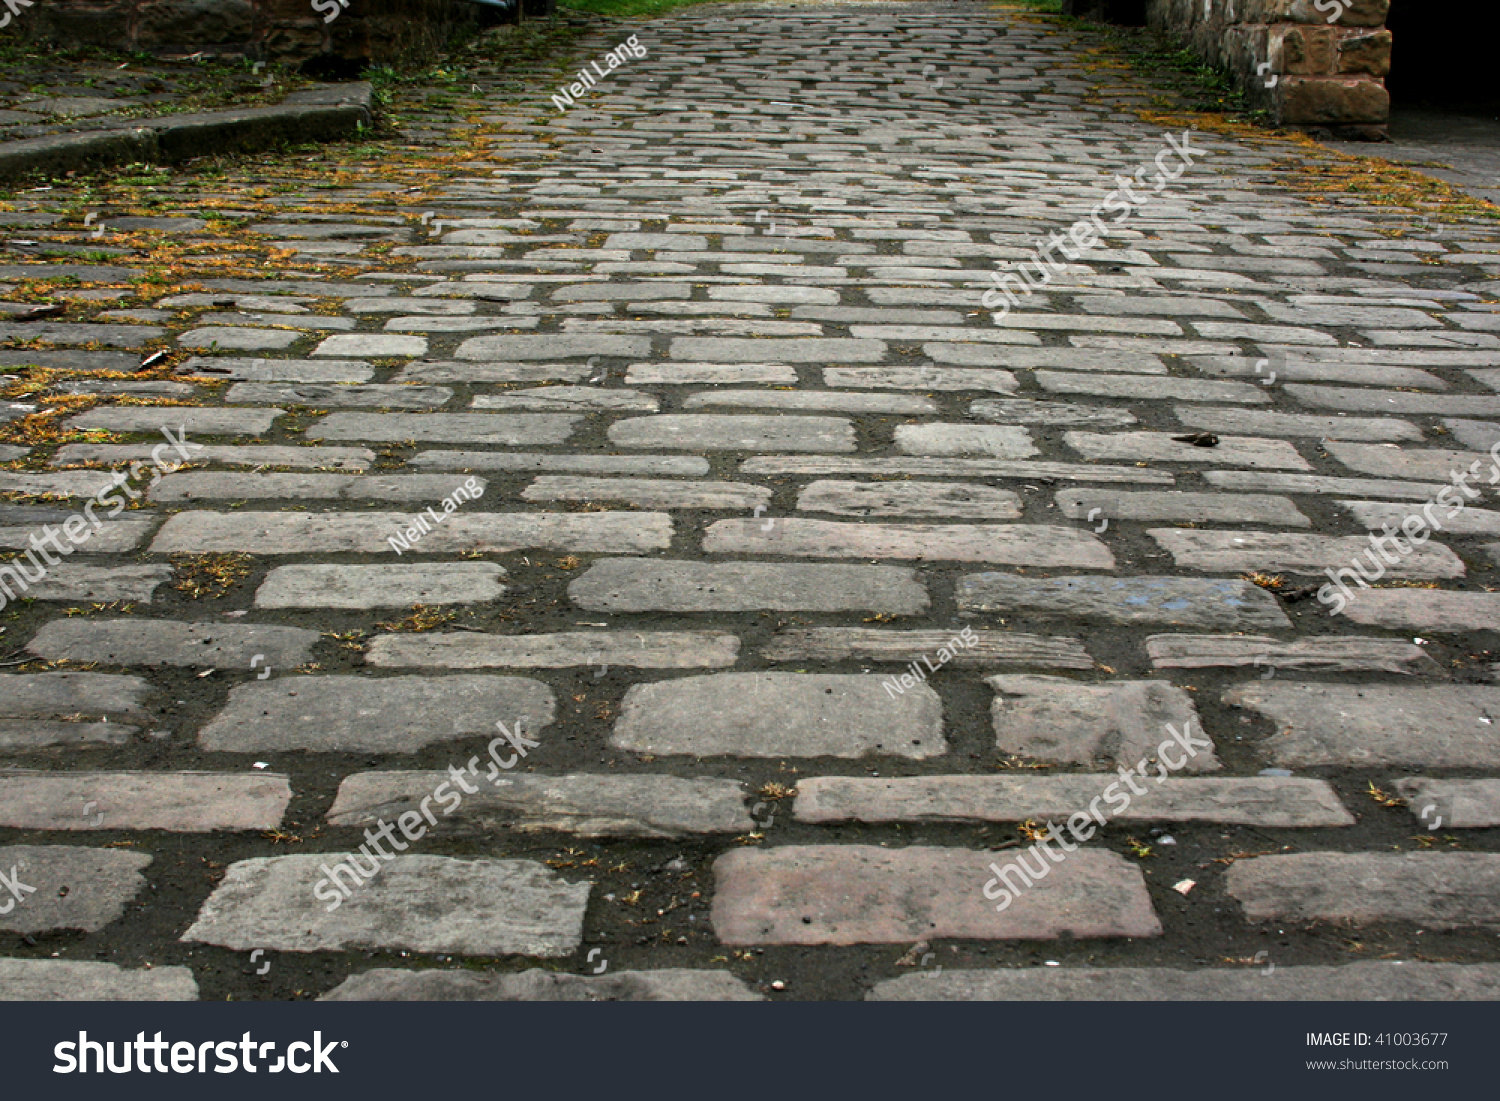 Cobblestone Path Stock Photo 41003677 Shutterstock